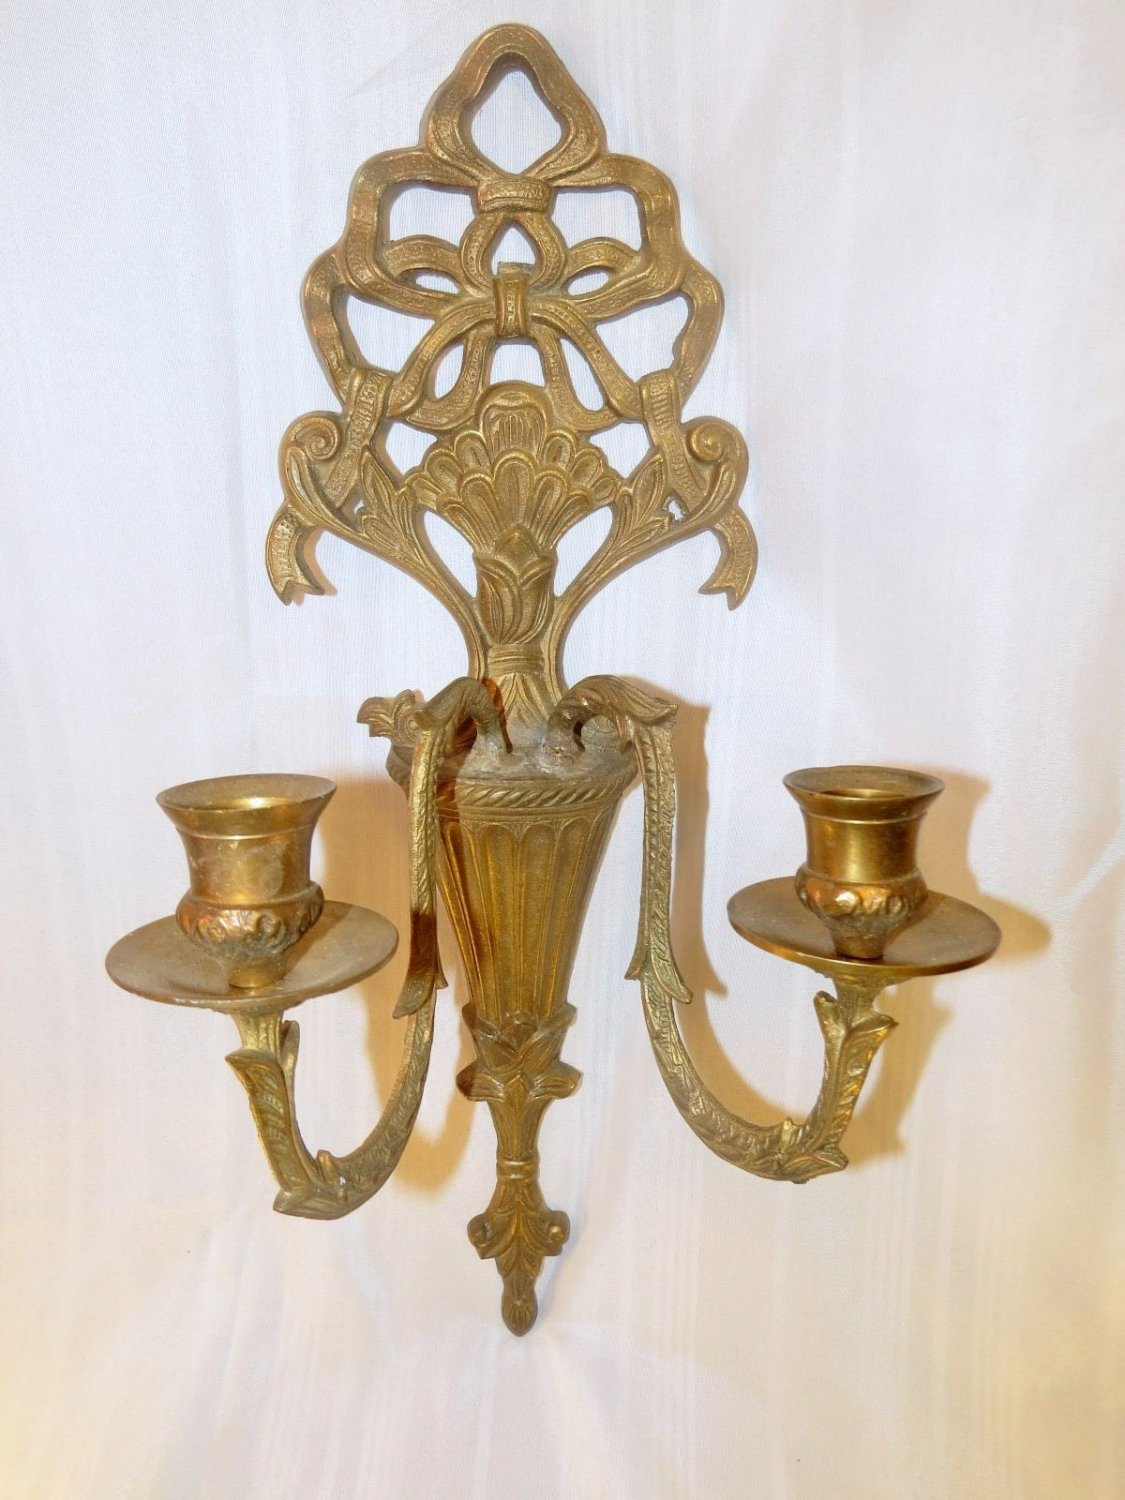 Image of: Vintage Antique Quality 2 Arm Bronze Brass Candle Wall Art Sconce Candle Holder